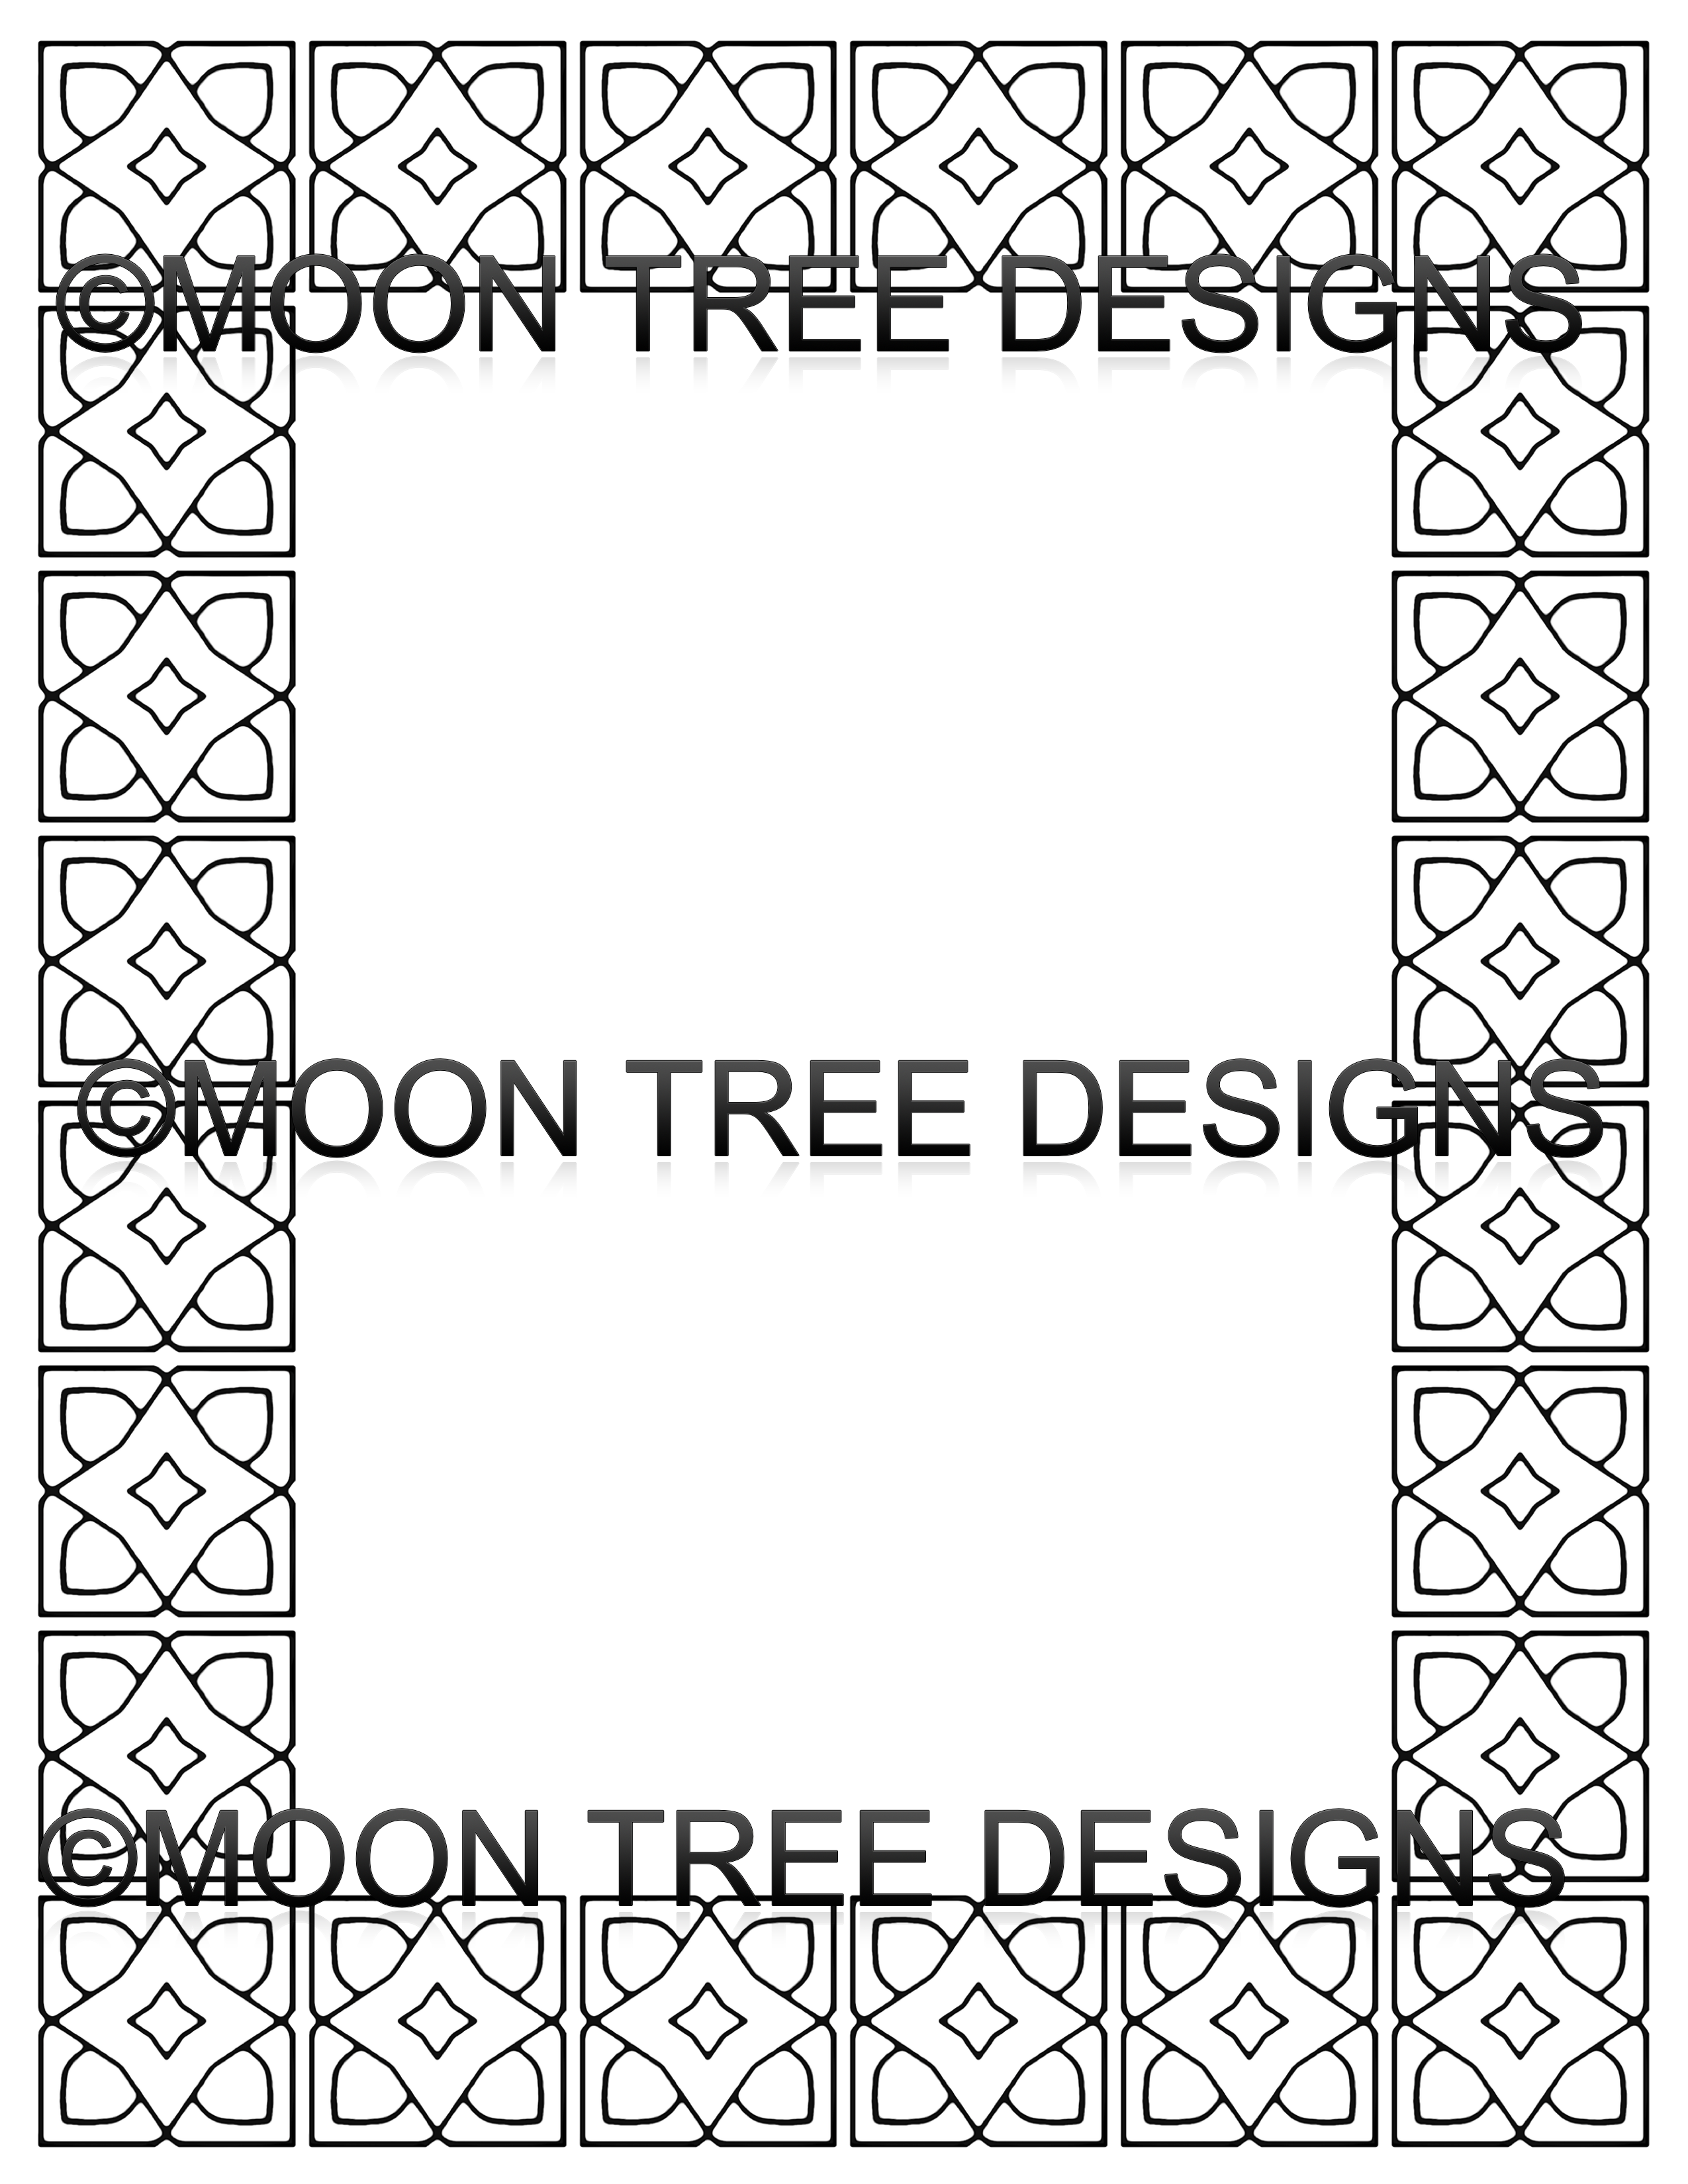 Black And White Images Ready To Download Just Print And Color